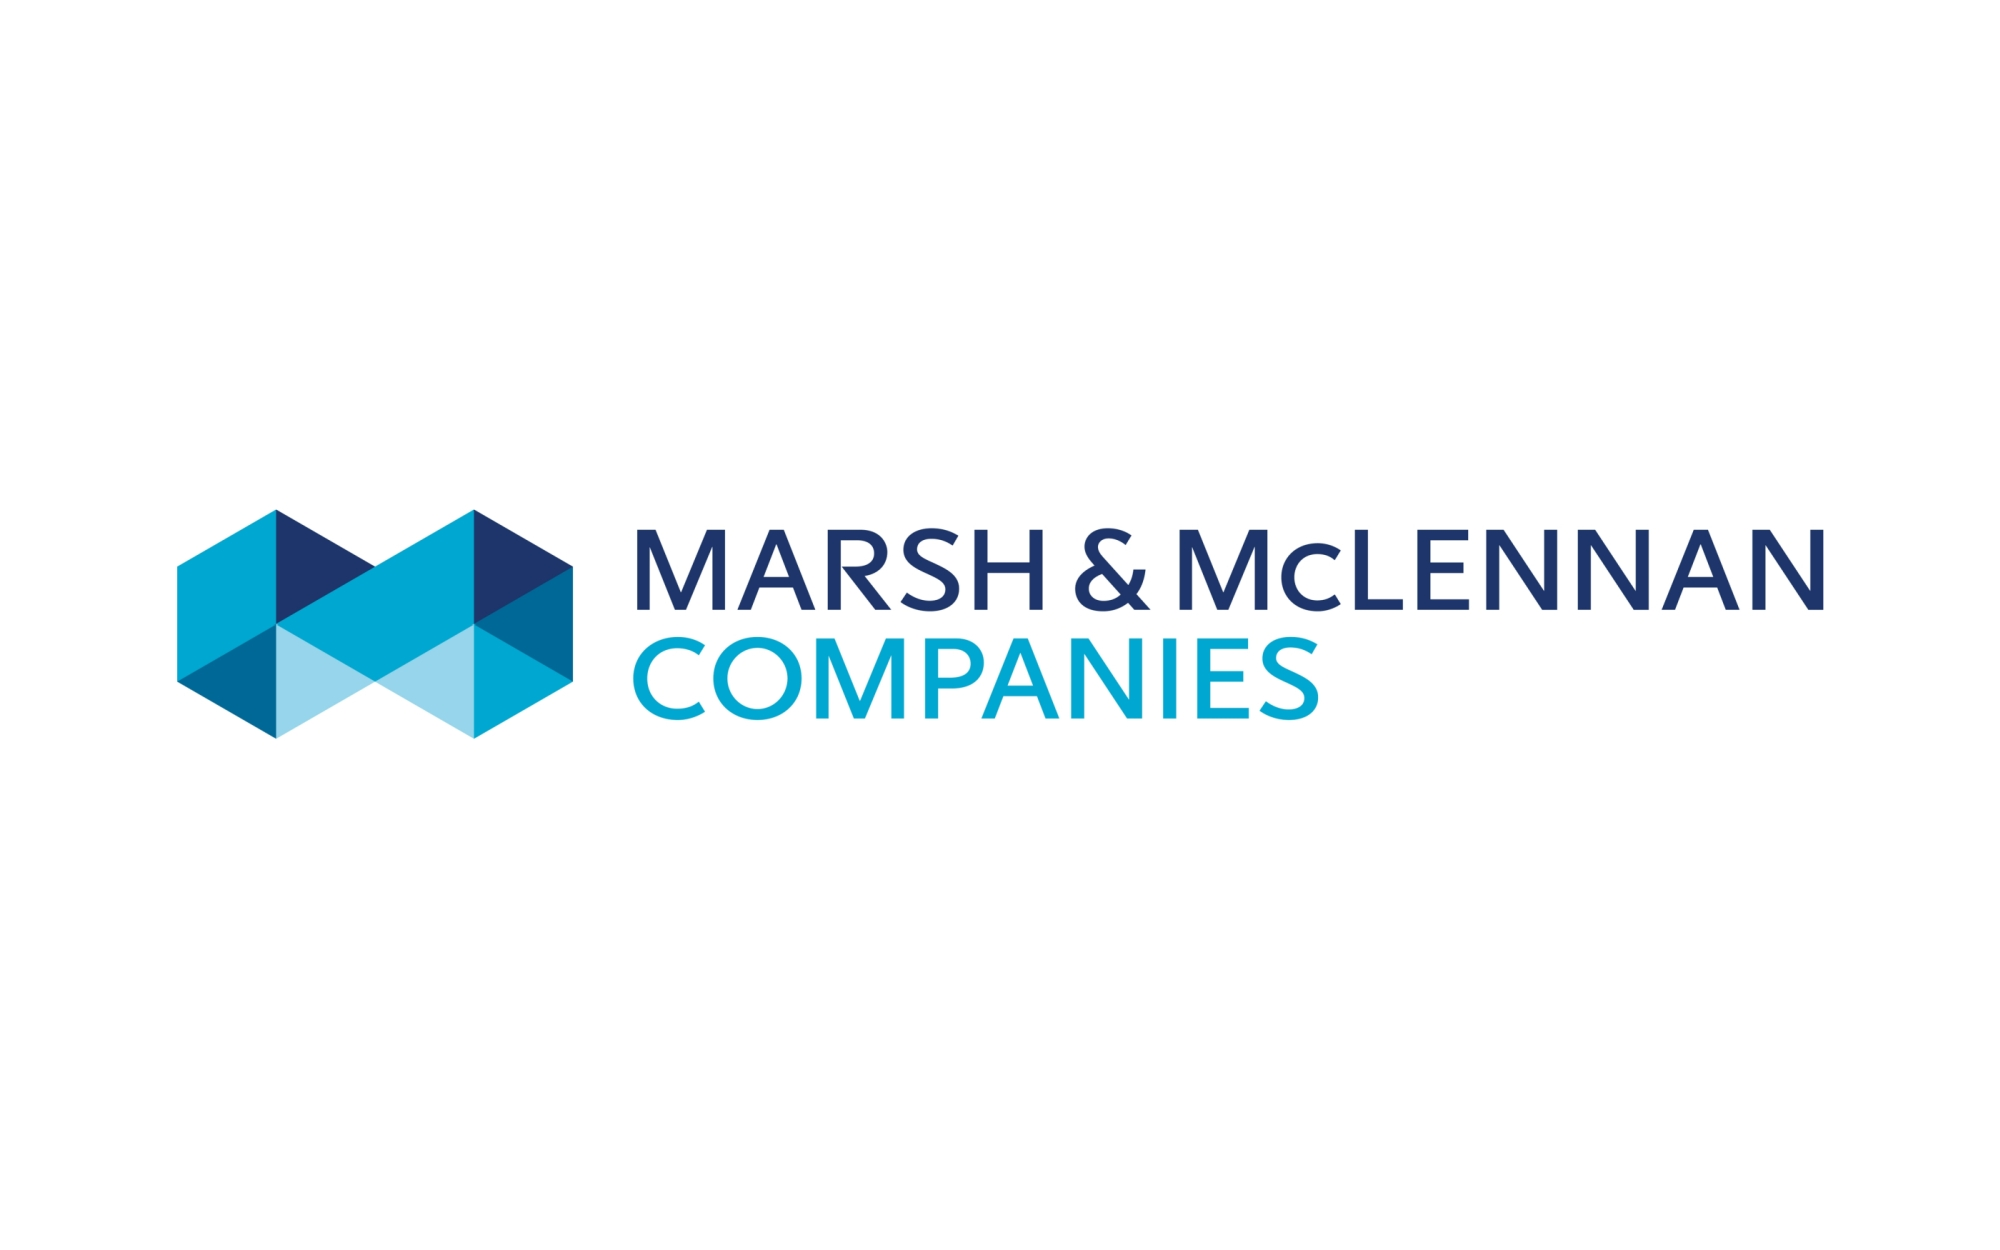 Marsh & McLennan HiRes